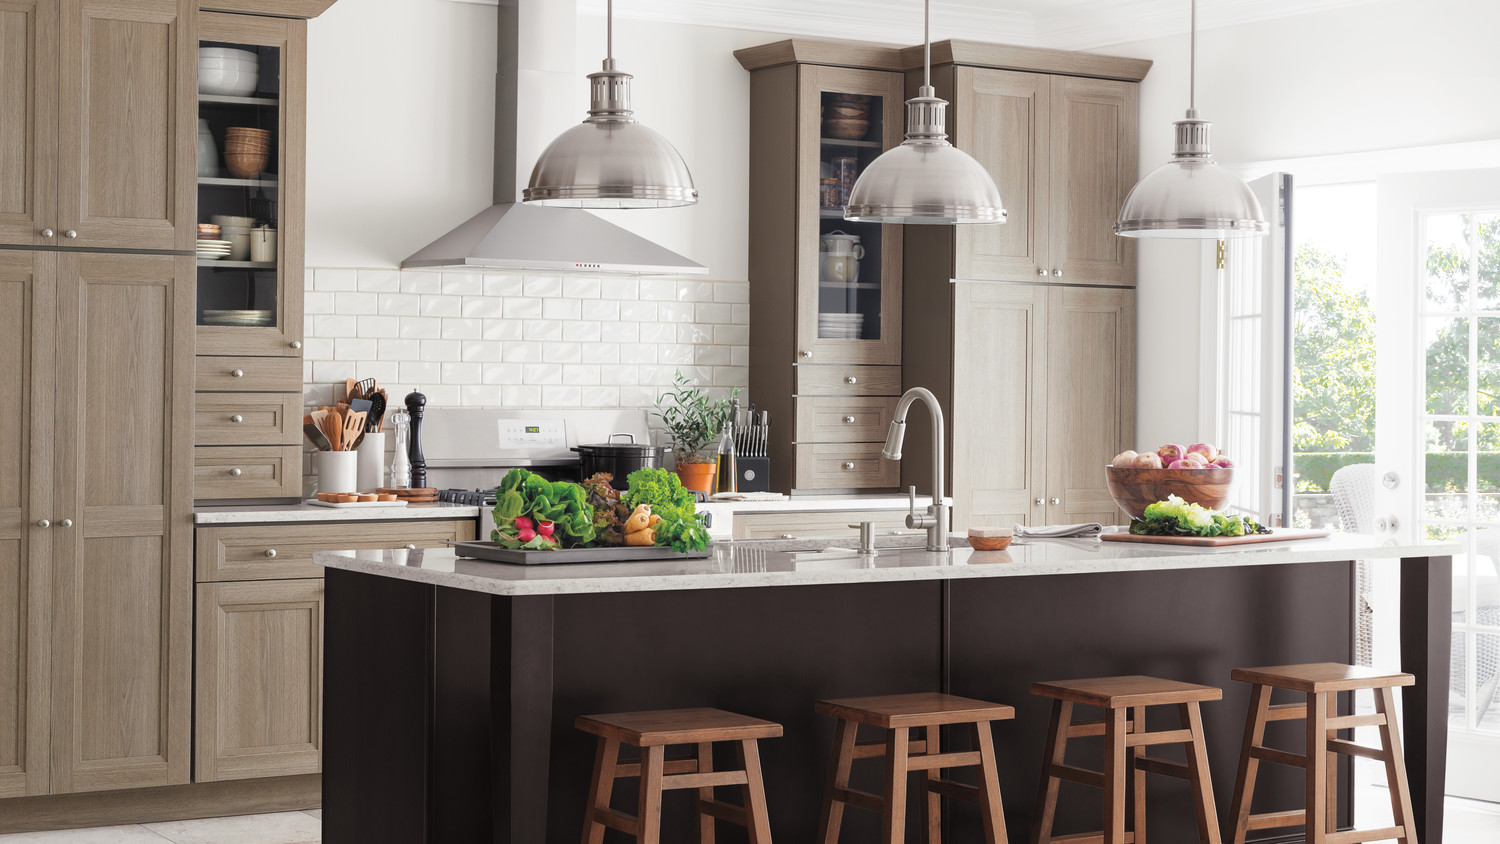 Video: Martha Stewart Shares Her Kitchen Design Inspiration  Martha Stewart